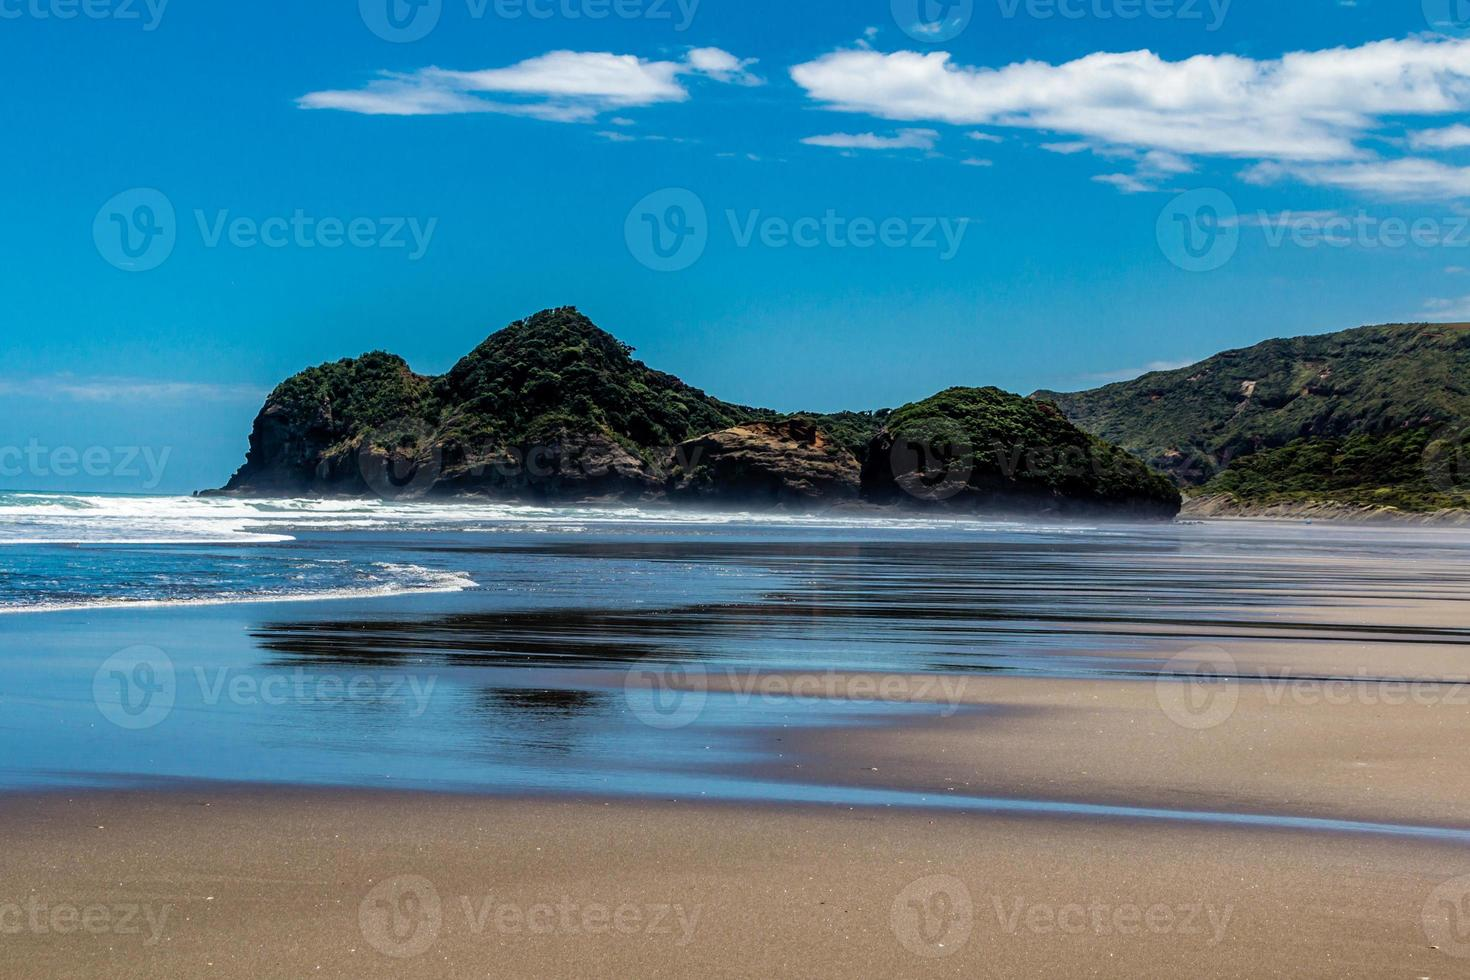 Sandy beaches, cliffs and rolling water on Bethels Beach. Auckland, New Zealand photo